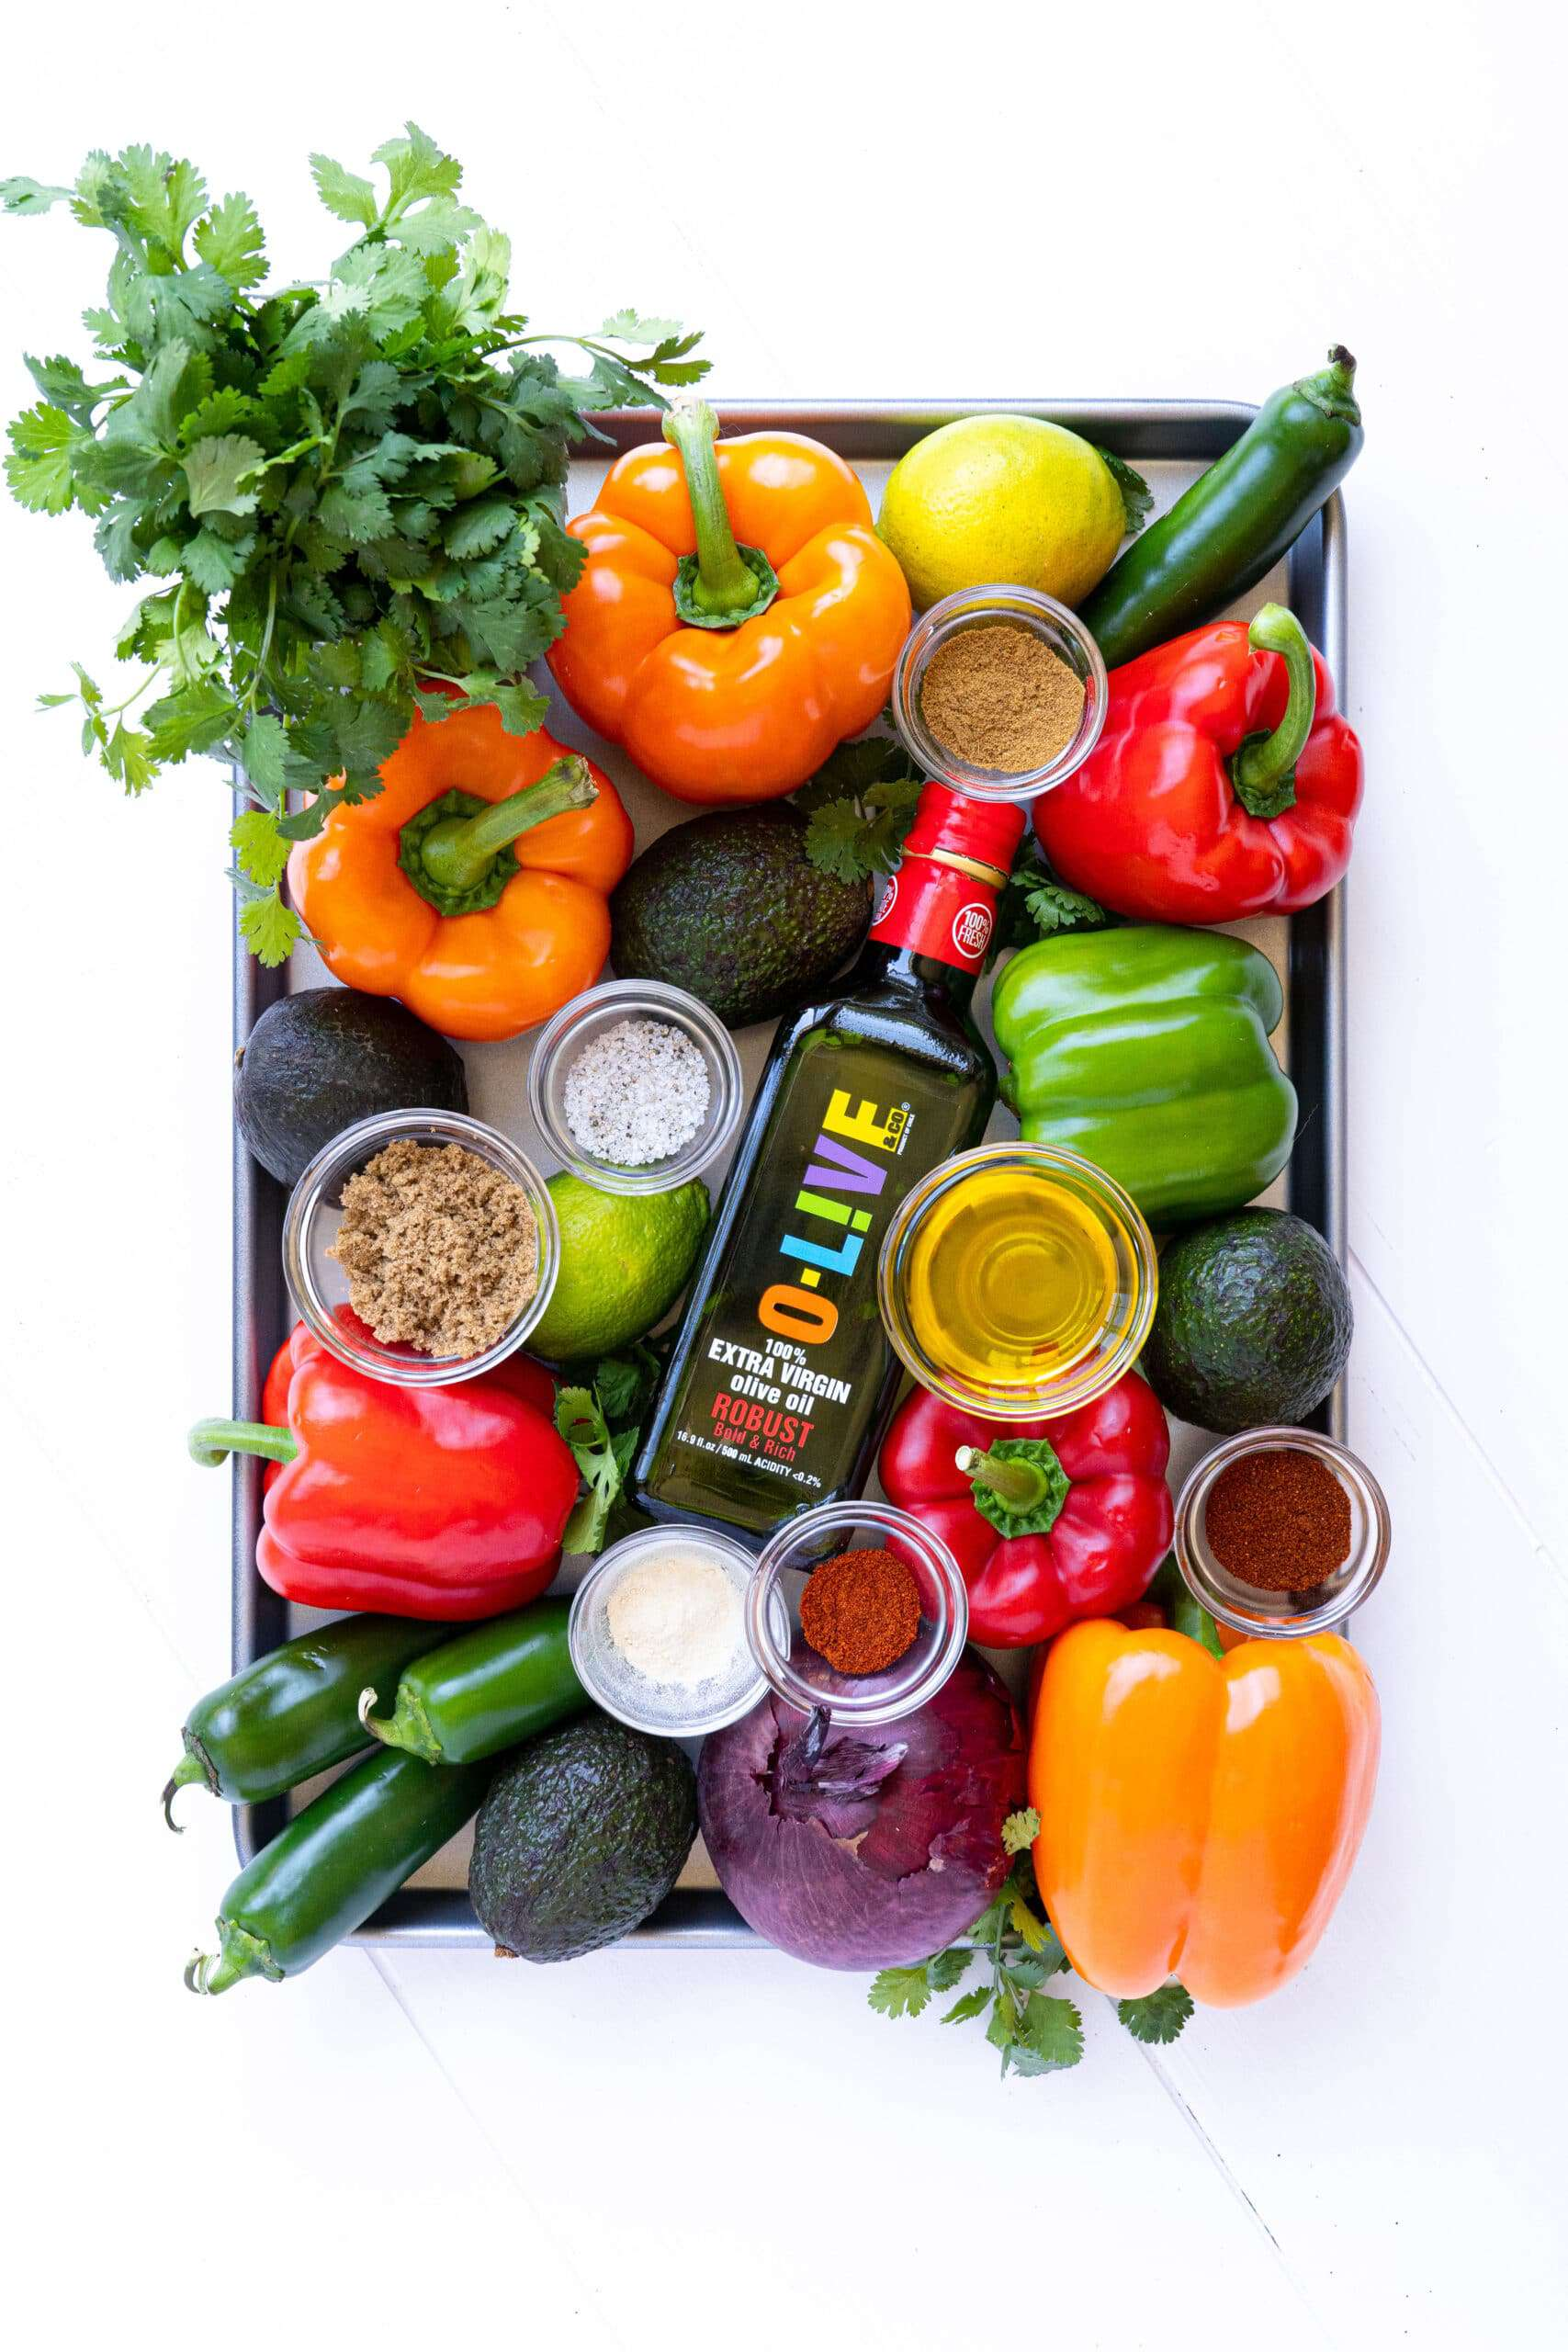 A sheet pan with veggies, spices and olive oil to make fajitas.